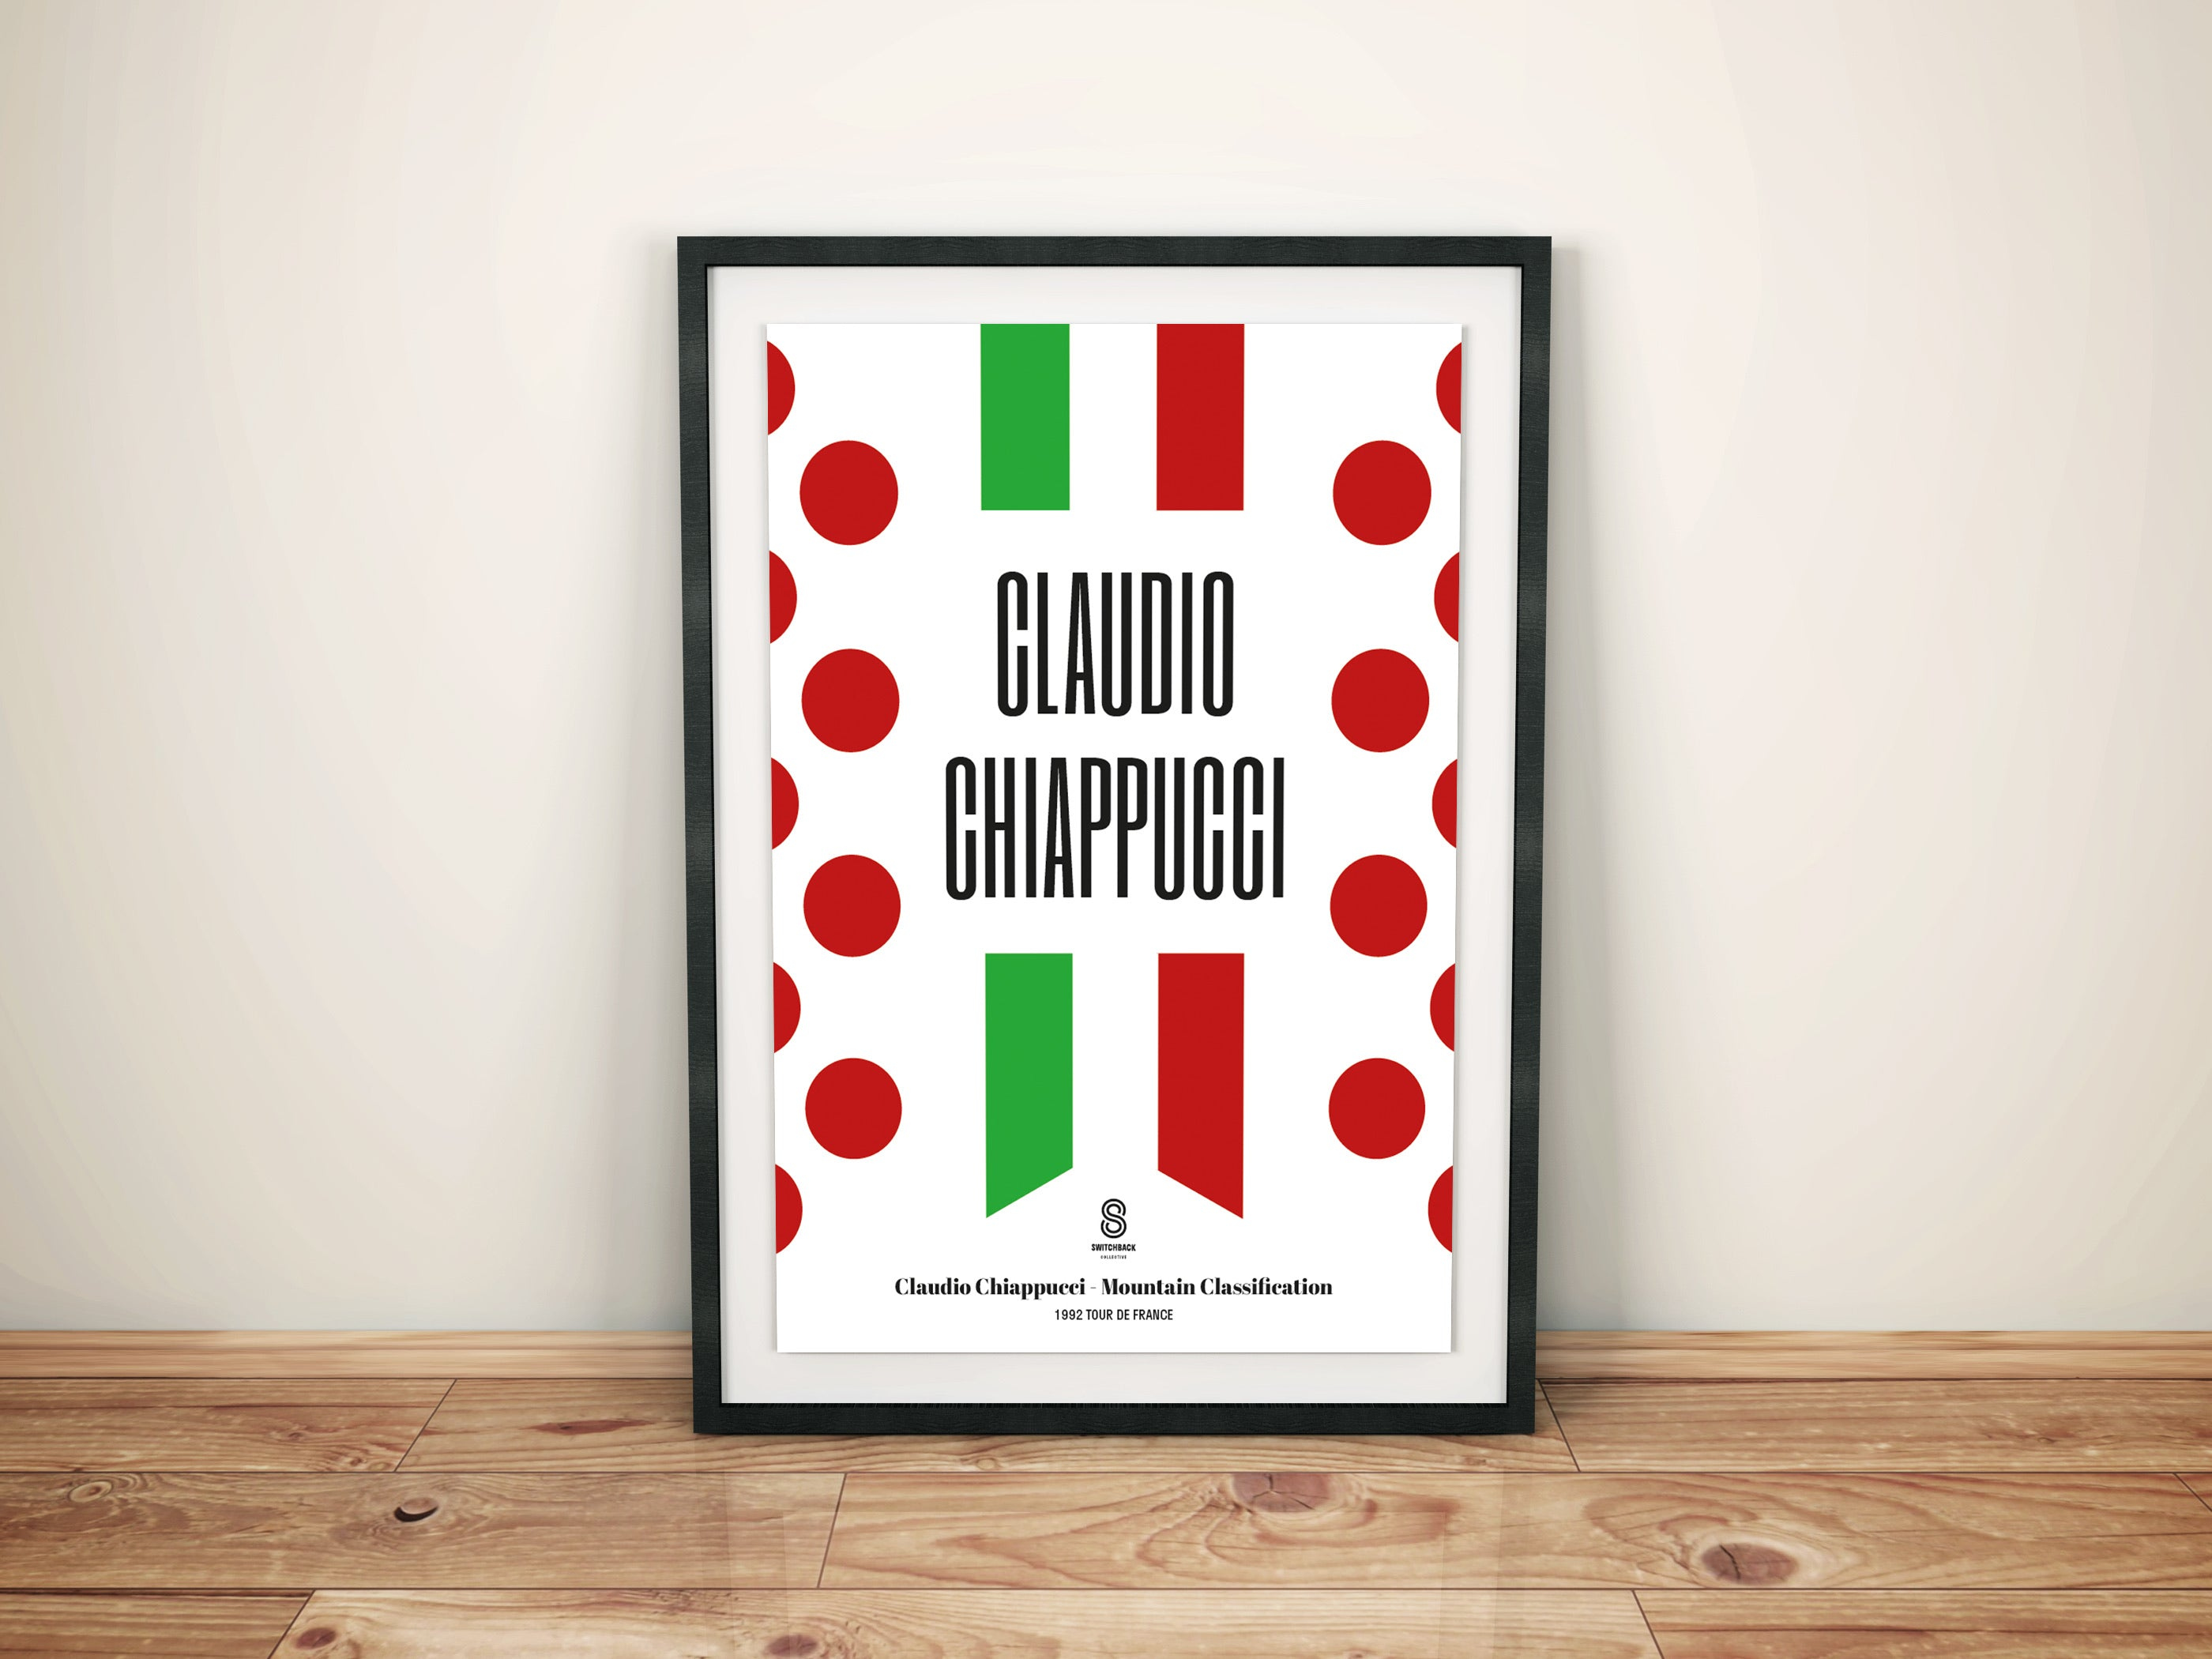 Claudio Chiappucci King of the Mountains - Cycling Print